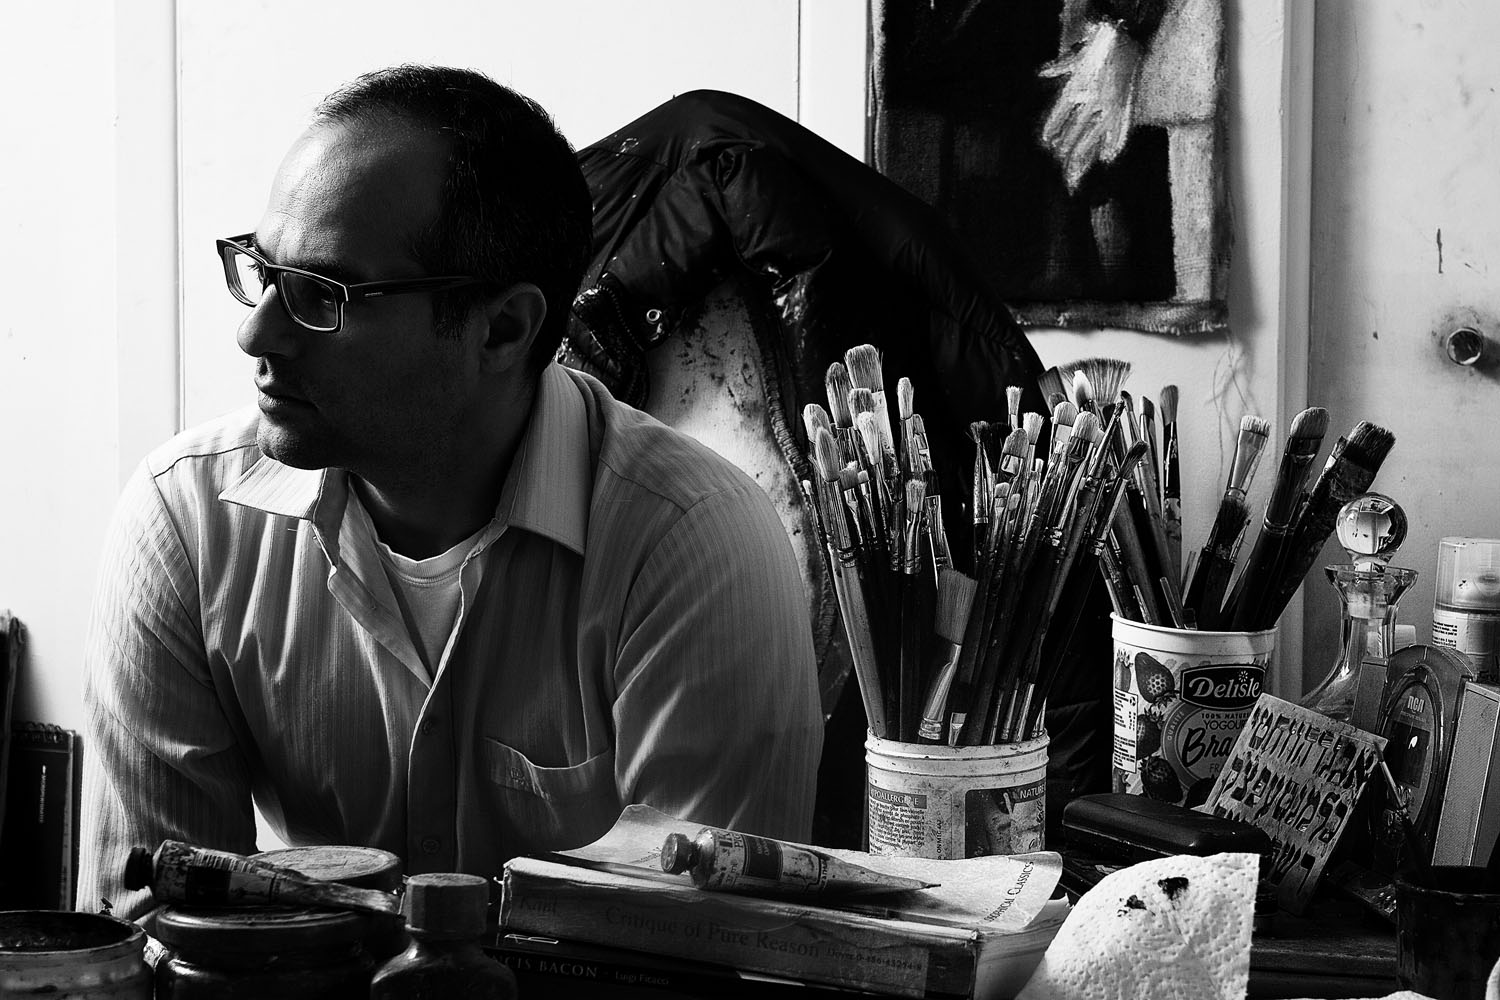 Oren_the painter portrait_BW5_alt.jpg